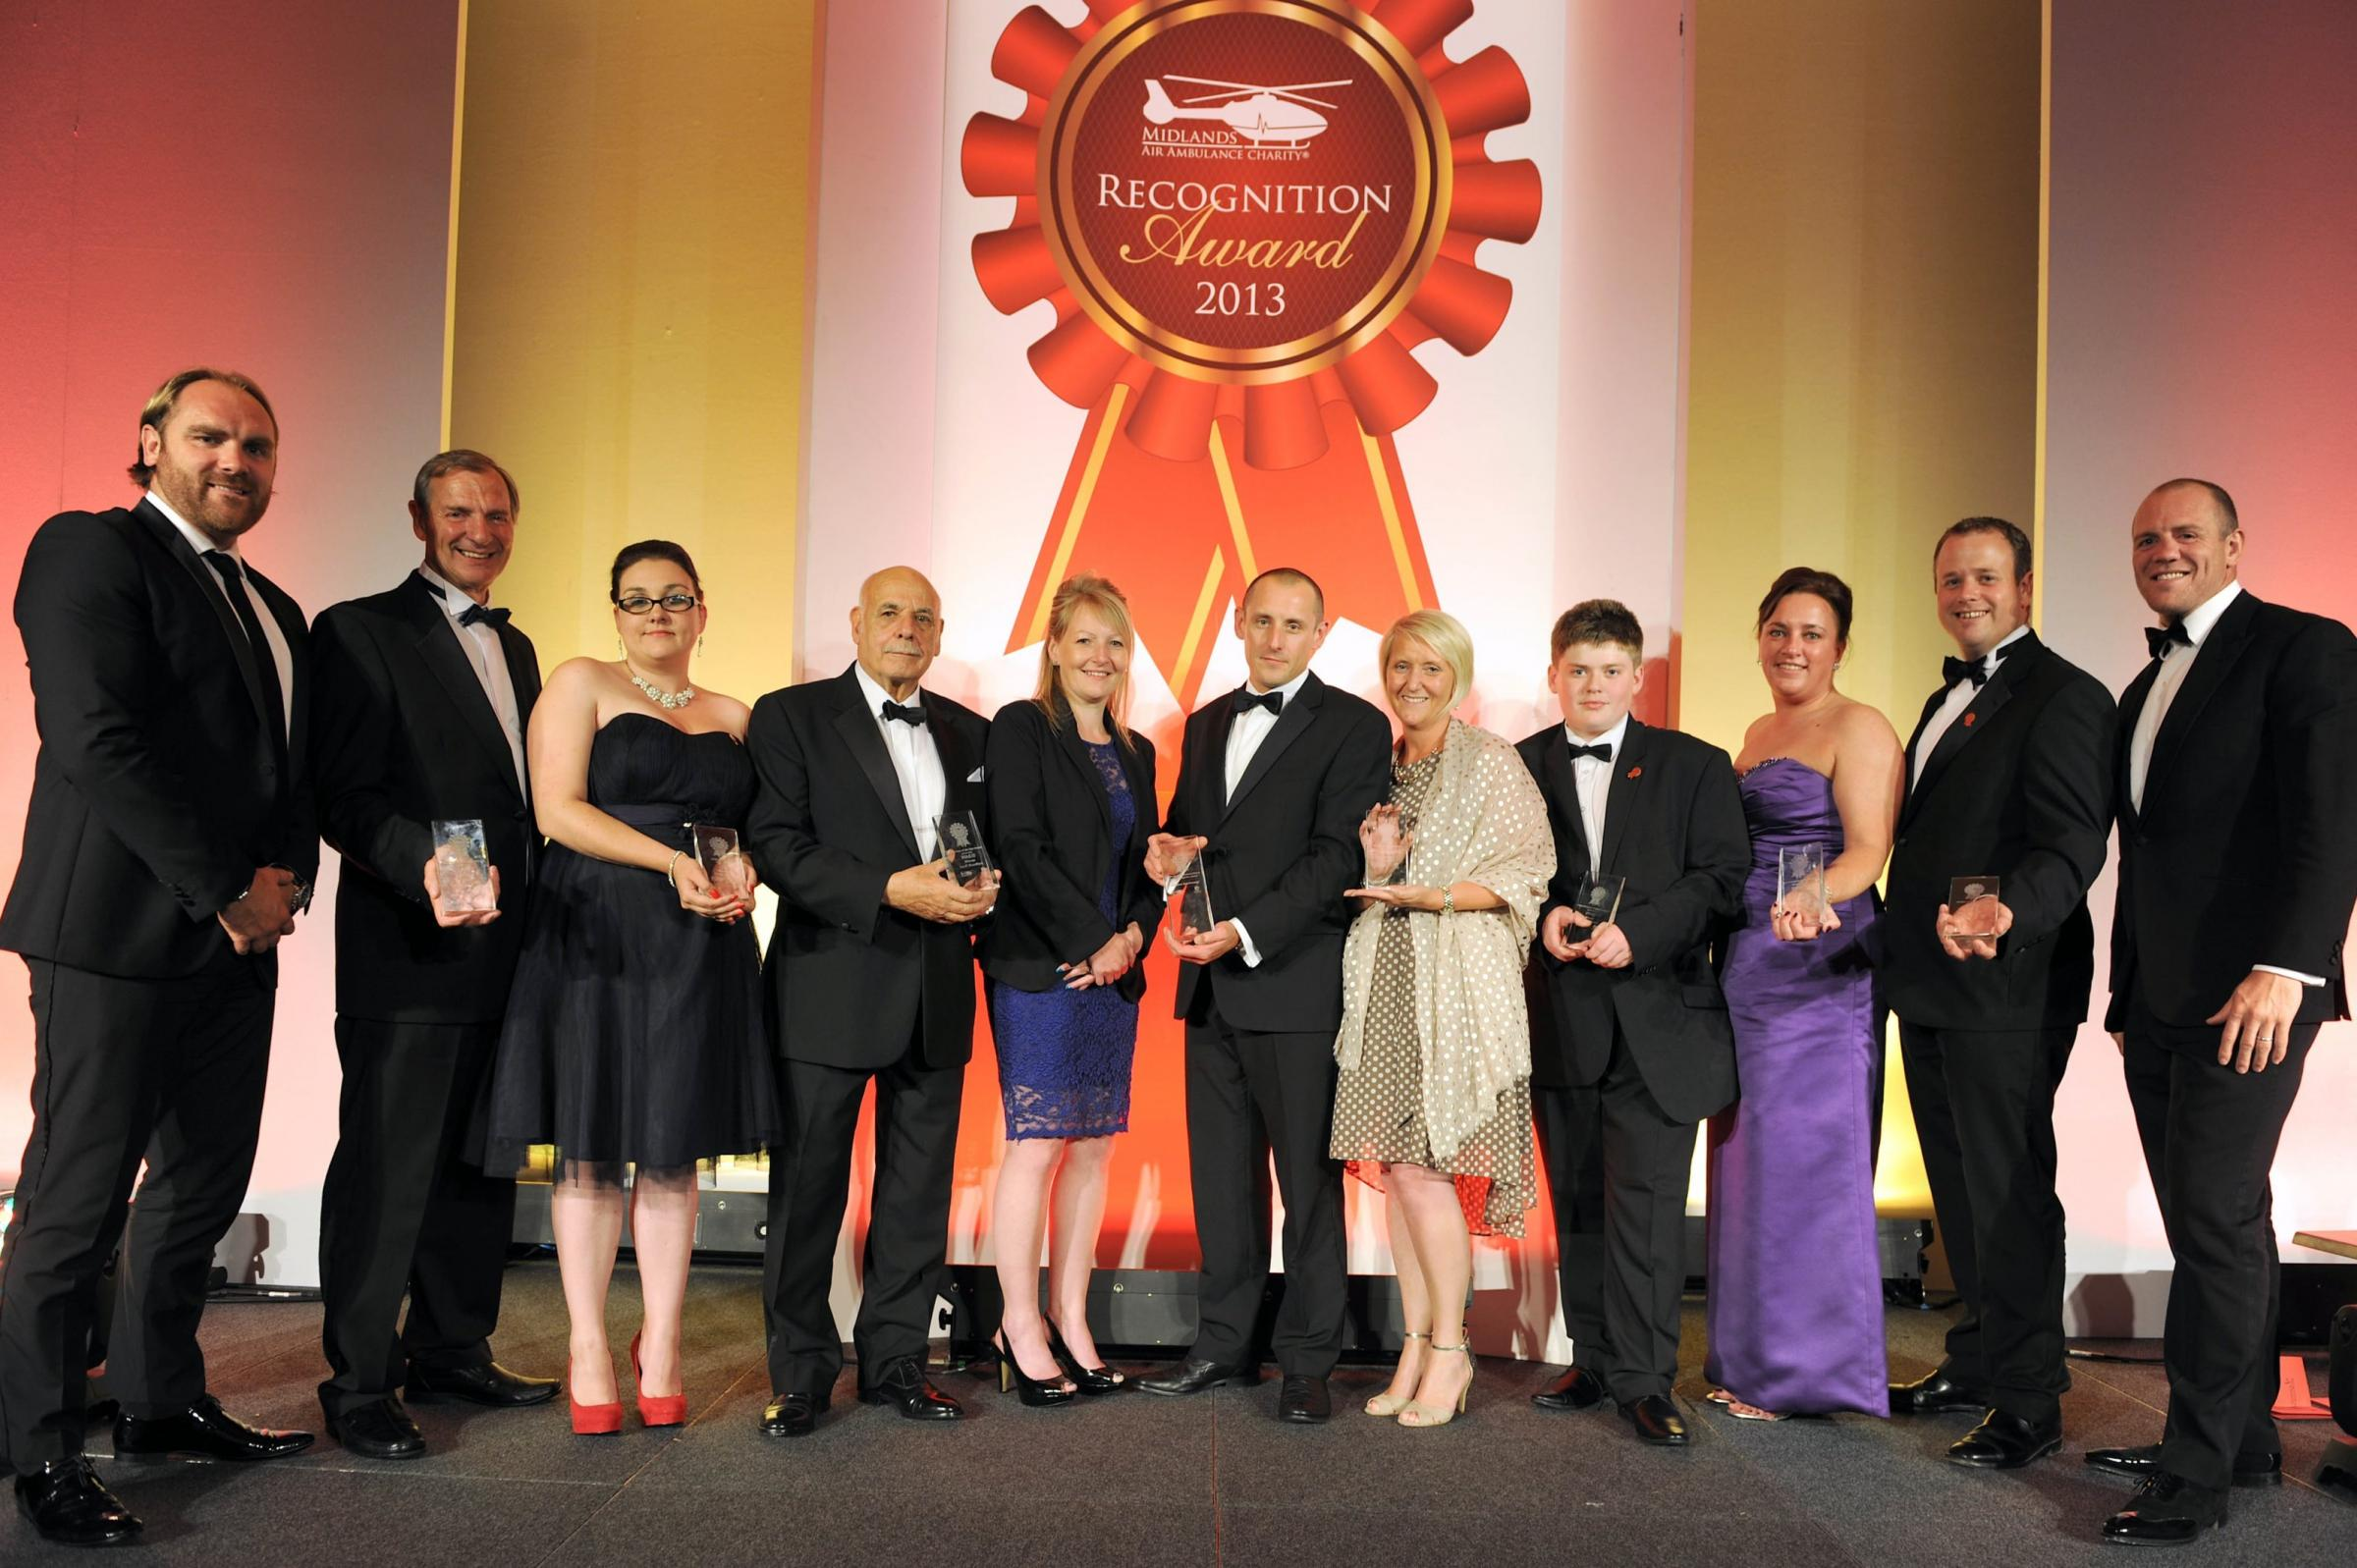 The winners of Midlands Air Ambulance Awards from 2013